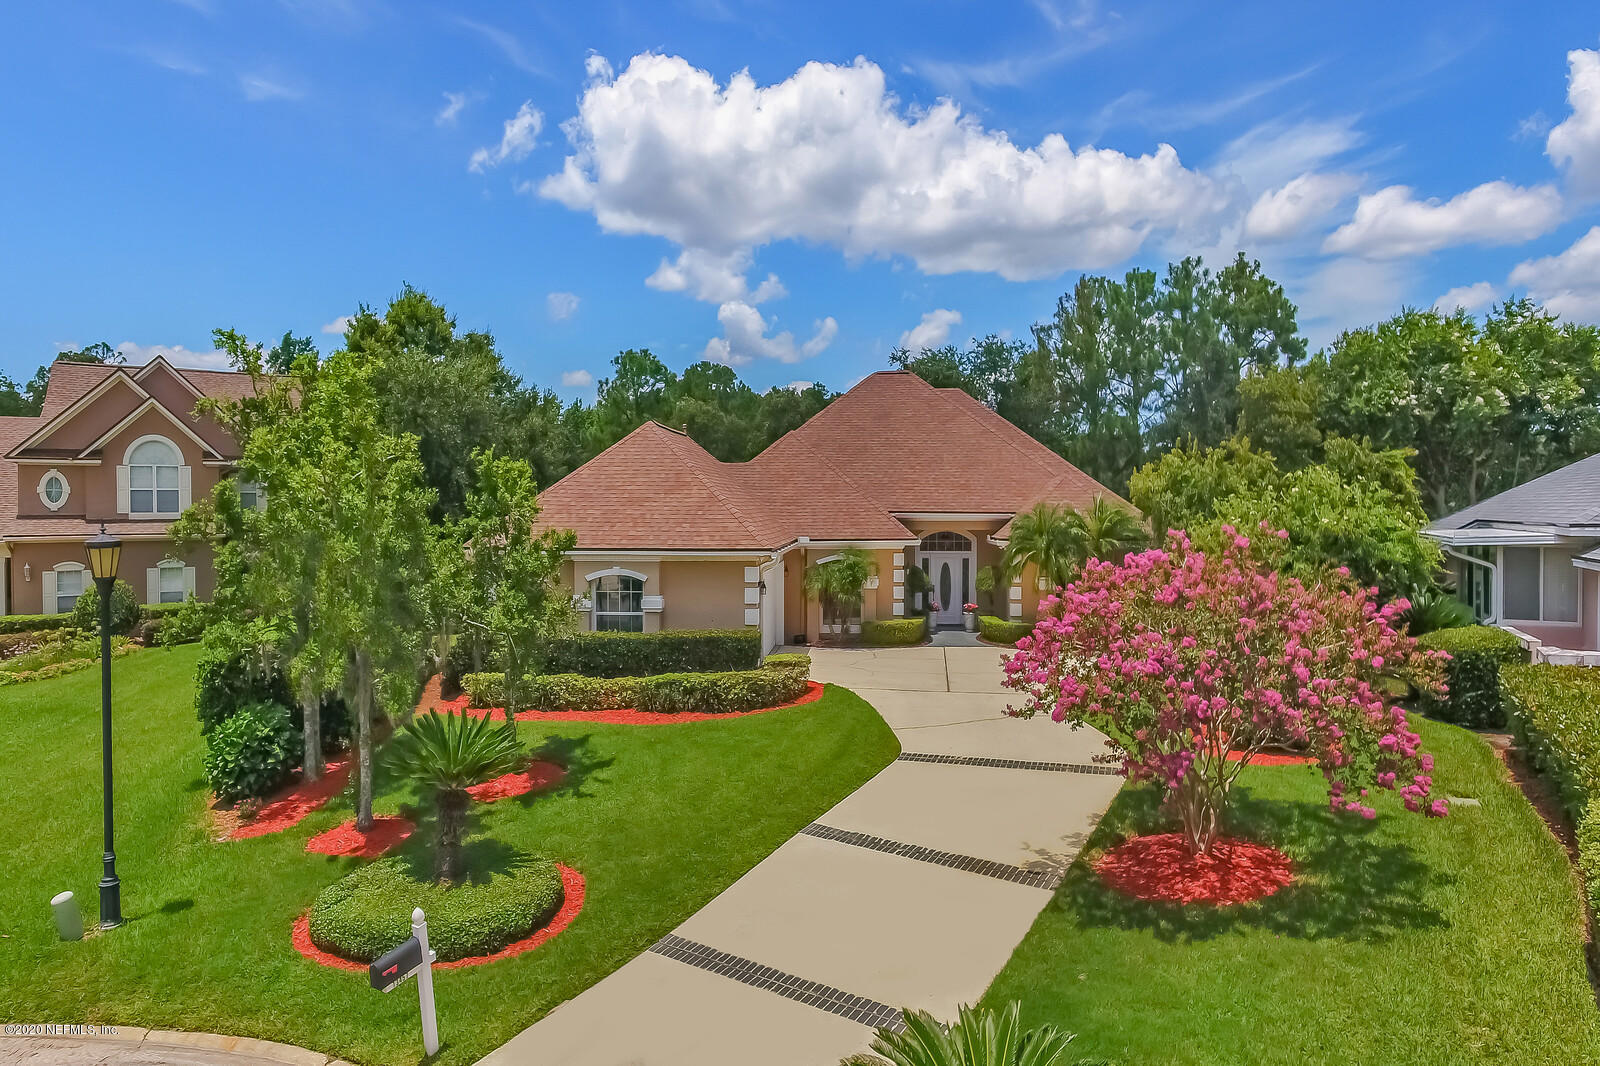 13457 TROON TRACE, JACKSONVILLE, FLORIDA 32225, 4 Bedrooms Bedrooms, ,3 BathroomsBathrooms,Residential,For sale,TROON TRACE,1060935